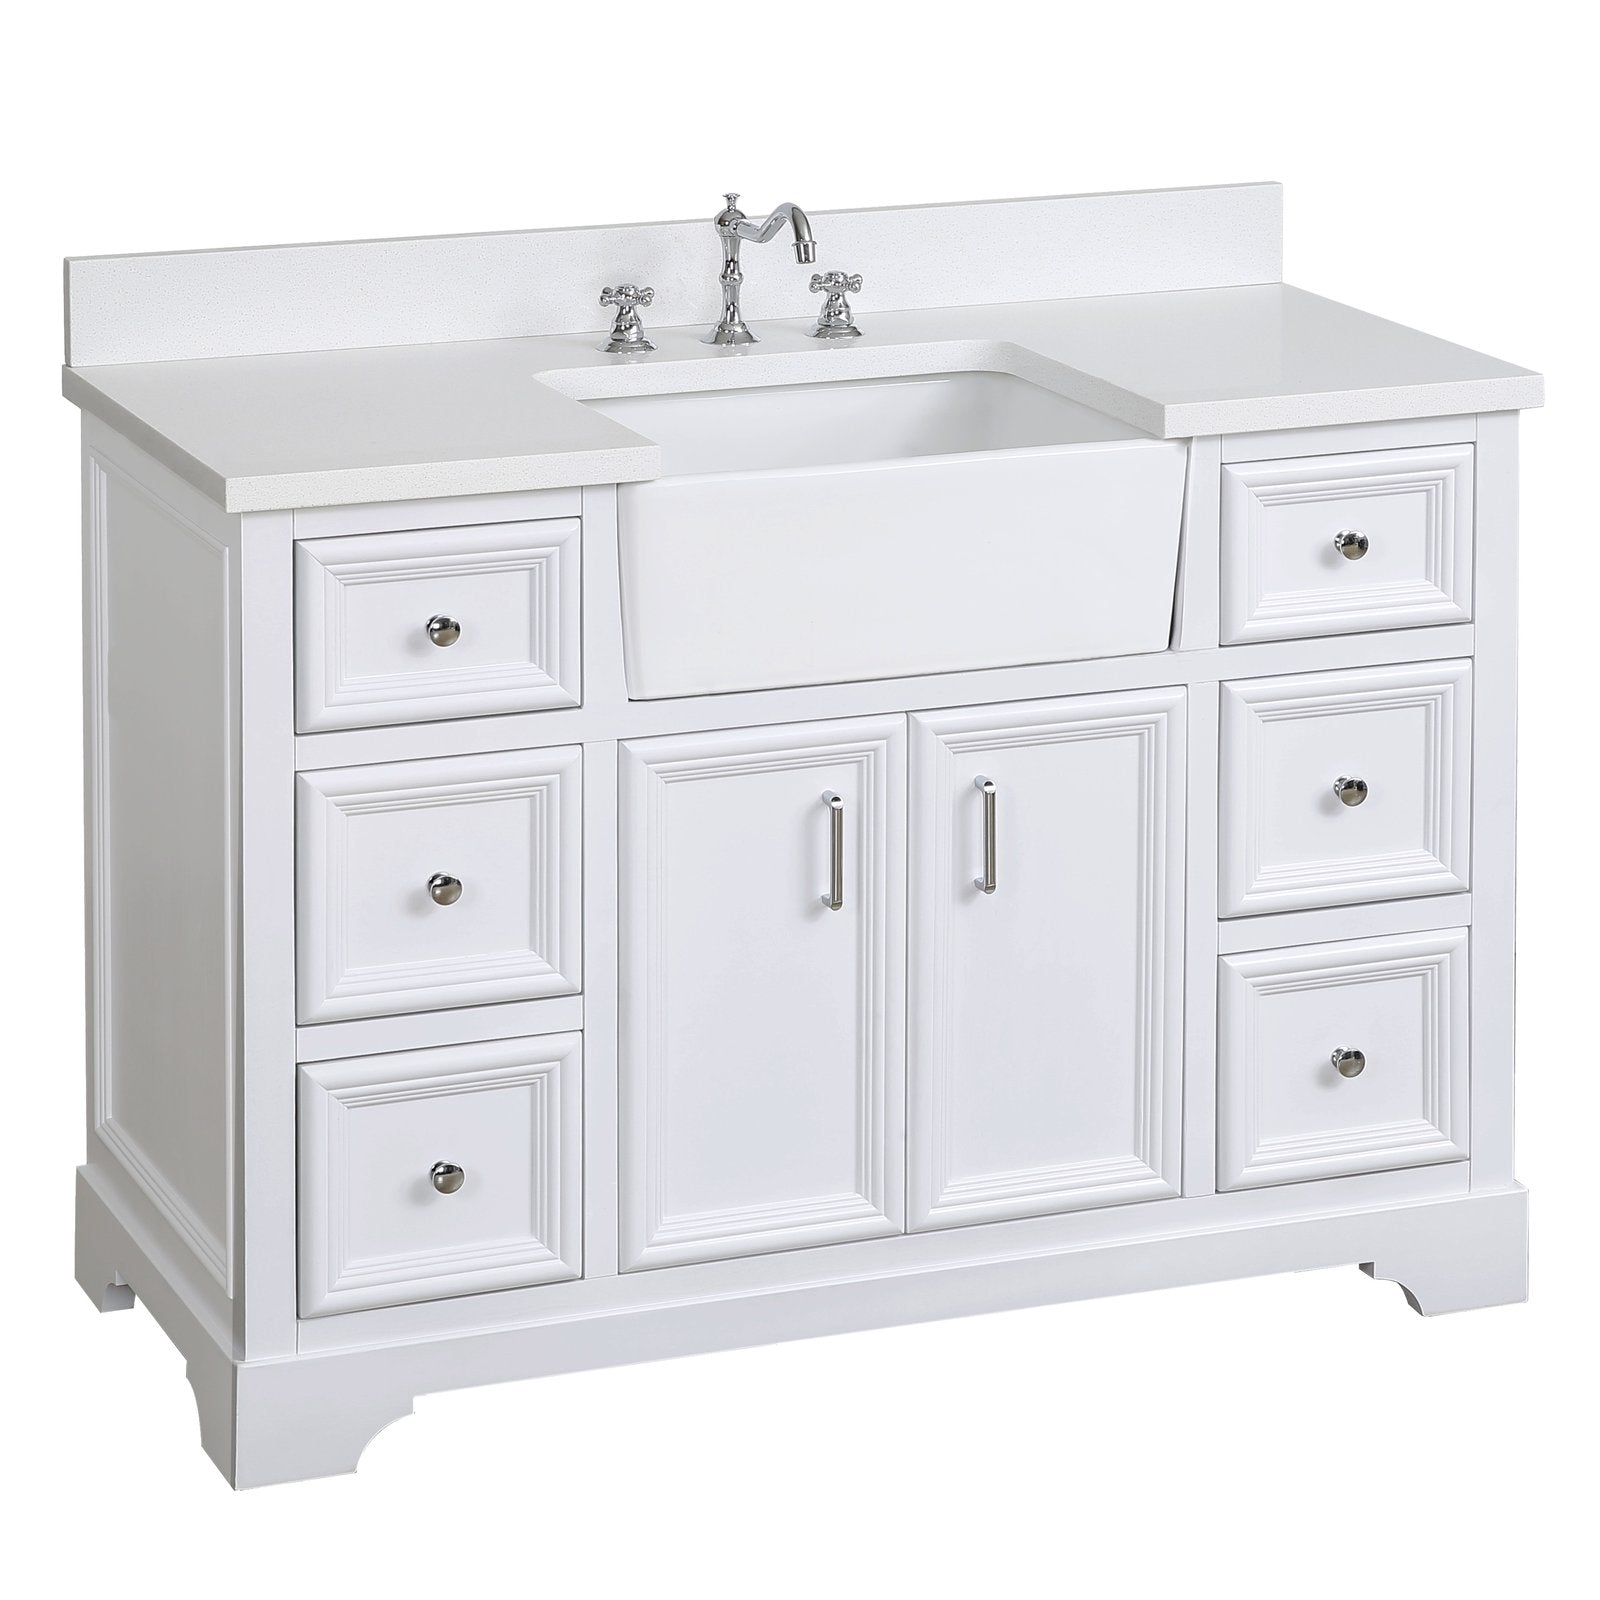 Zelda 48 Farmhouse Bathroom Vanity With Apron Sink Quartz Top Kitchenbathcollection